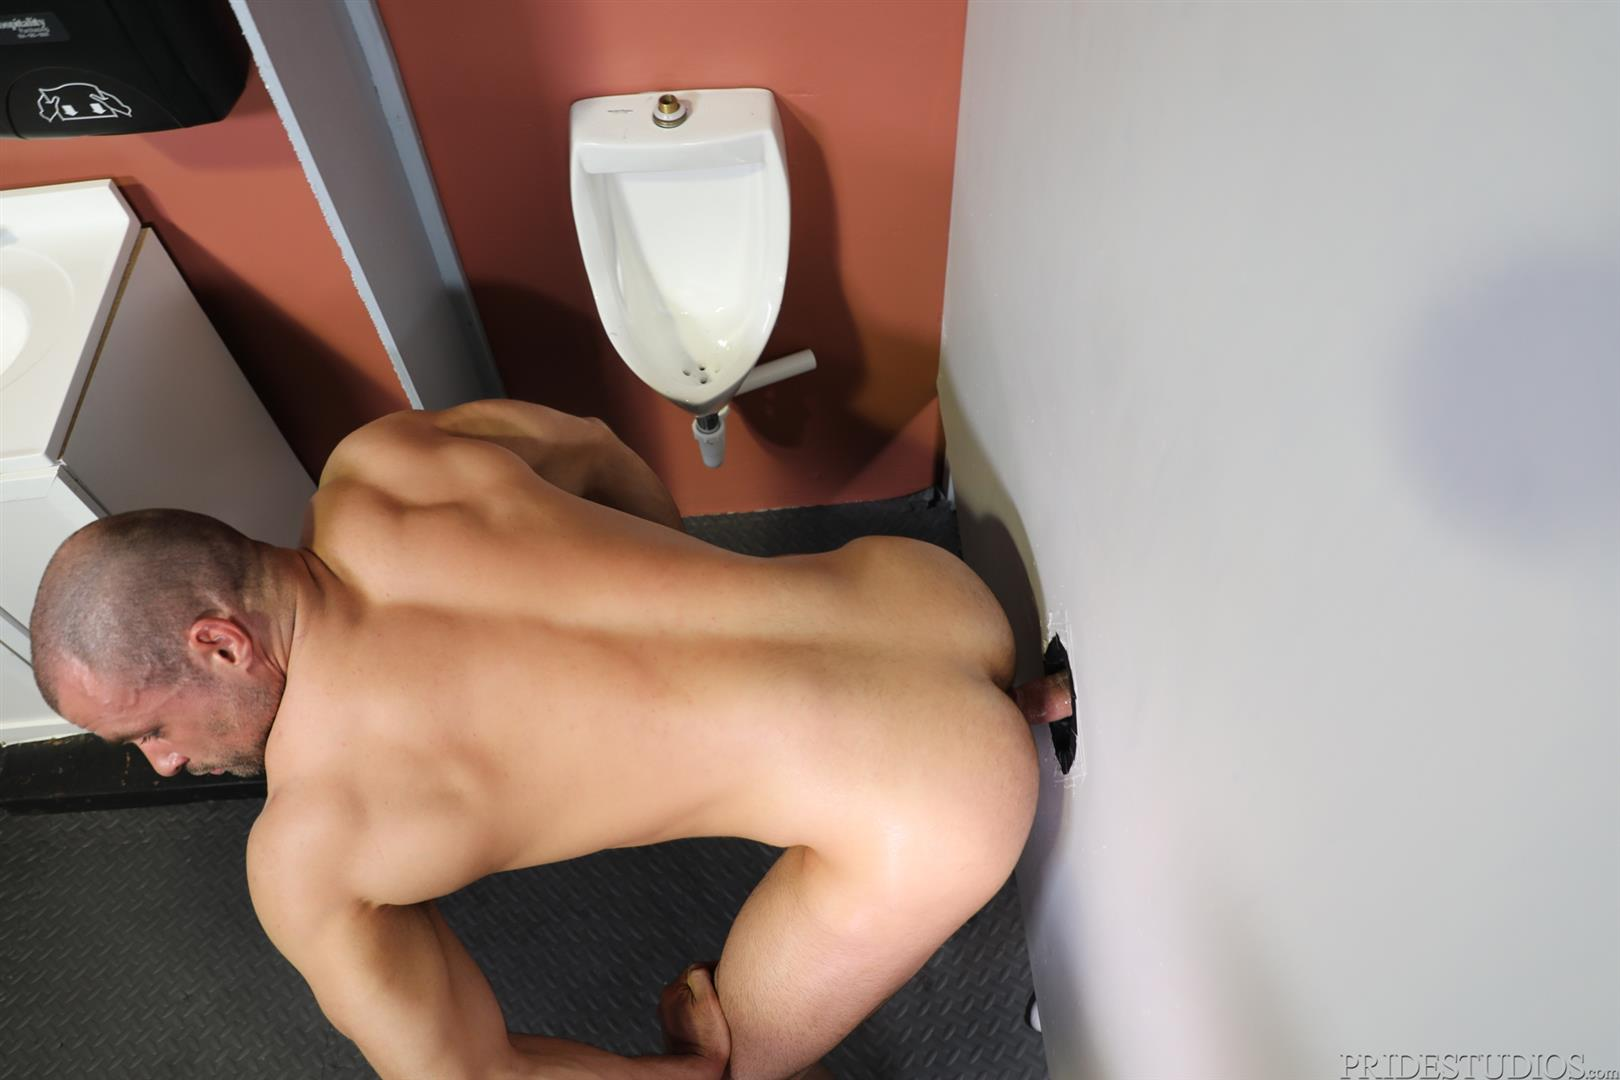 Men-Over-30-Ricky-Larkin-and-Jaxx-Thanatos-Sucking-and-Fucking-At-A-Glory-Hole-10 Hairy Muscle Hunk Jaxx Thanatos Sucks Cock And Gets His Ass Fucked Through A Glory Hole